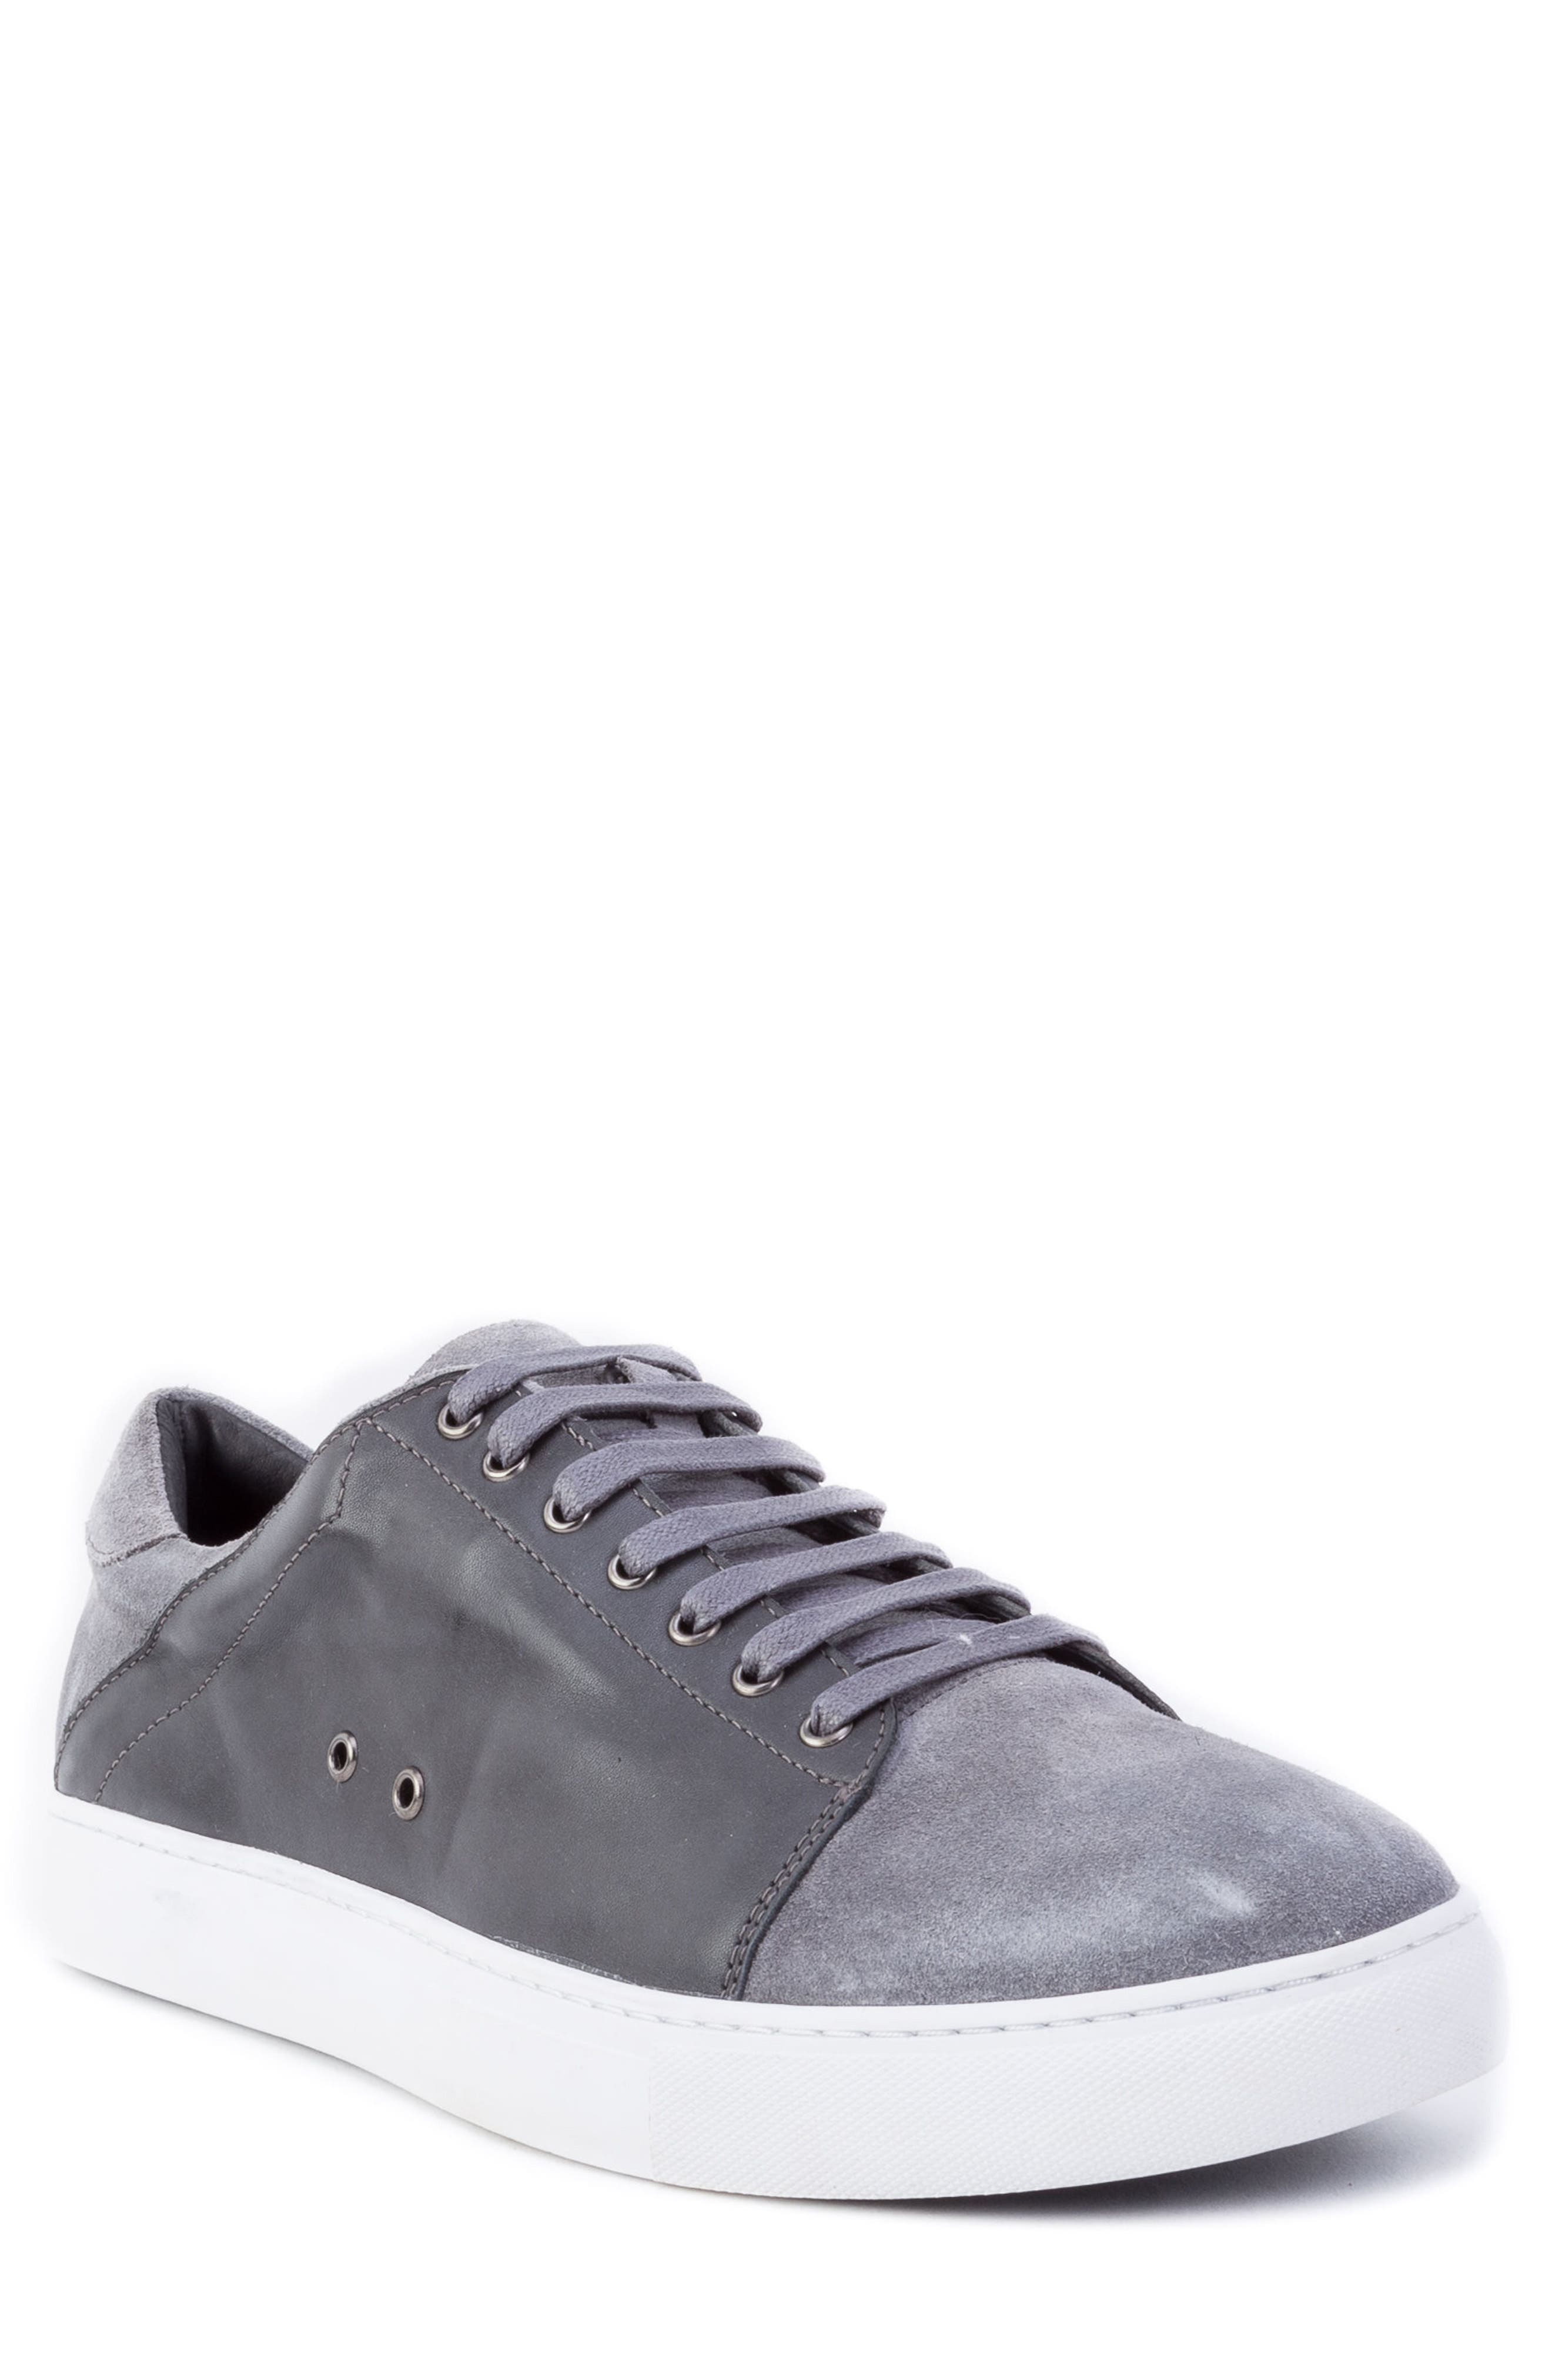 Record Low Top Sneaker,                         Main,                         color, Grey Suede/ Leather